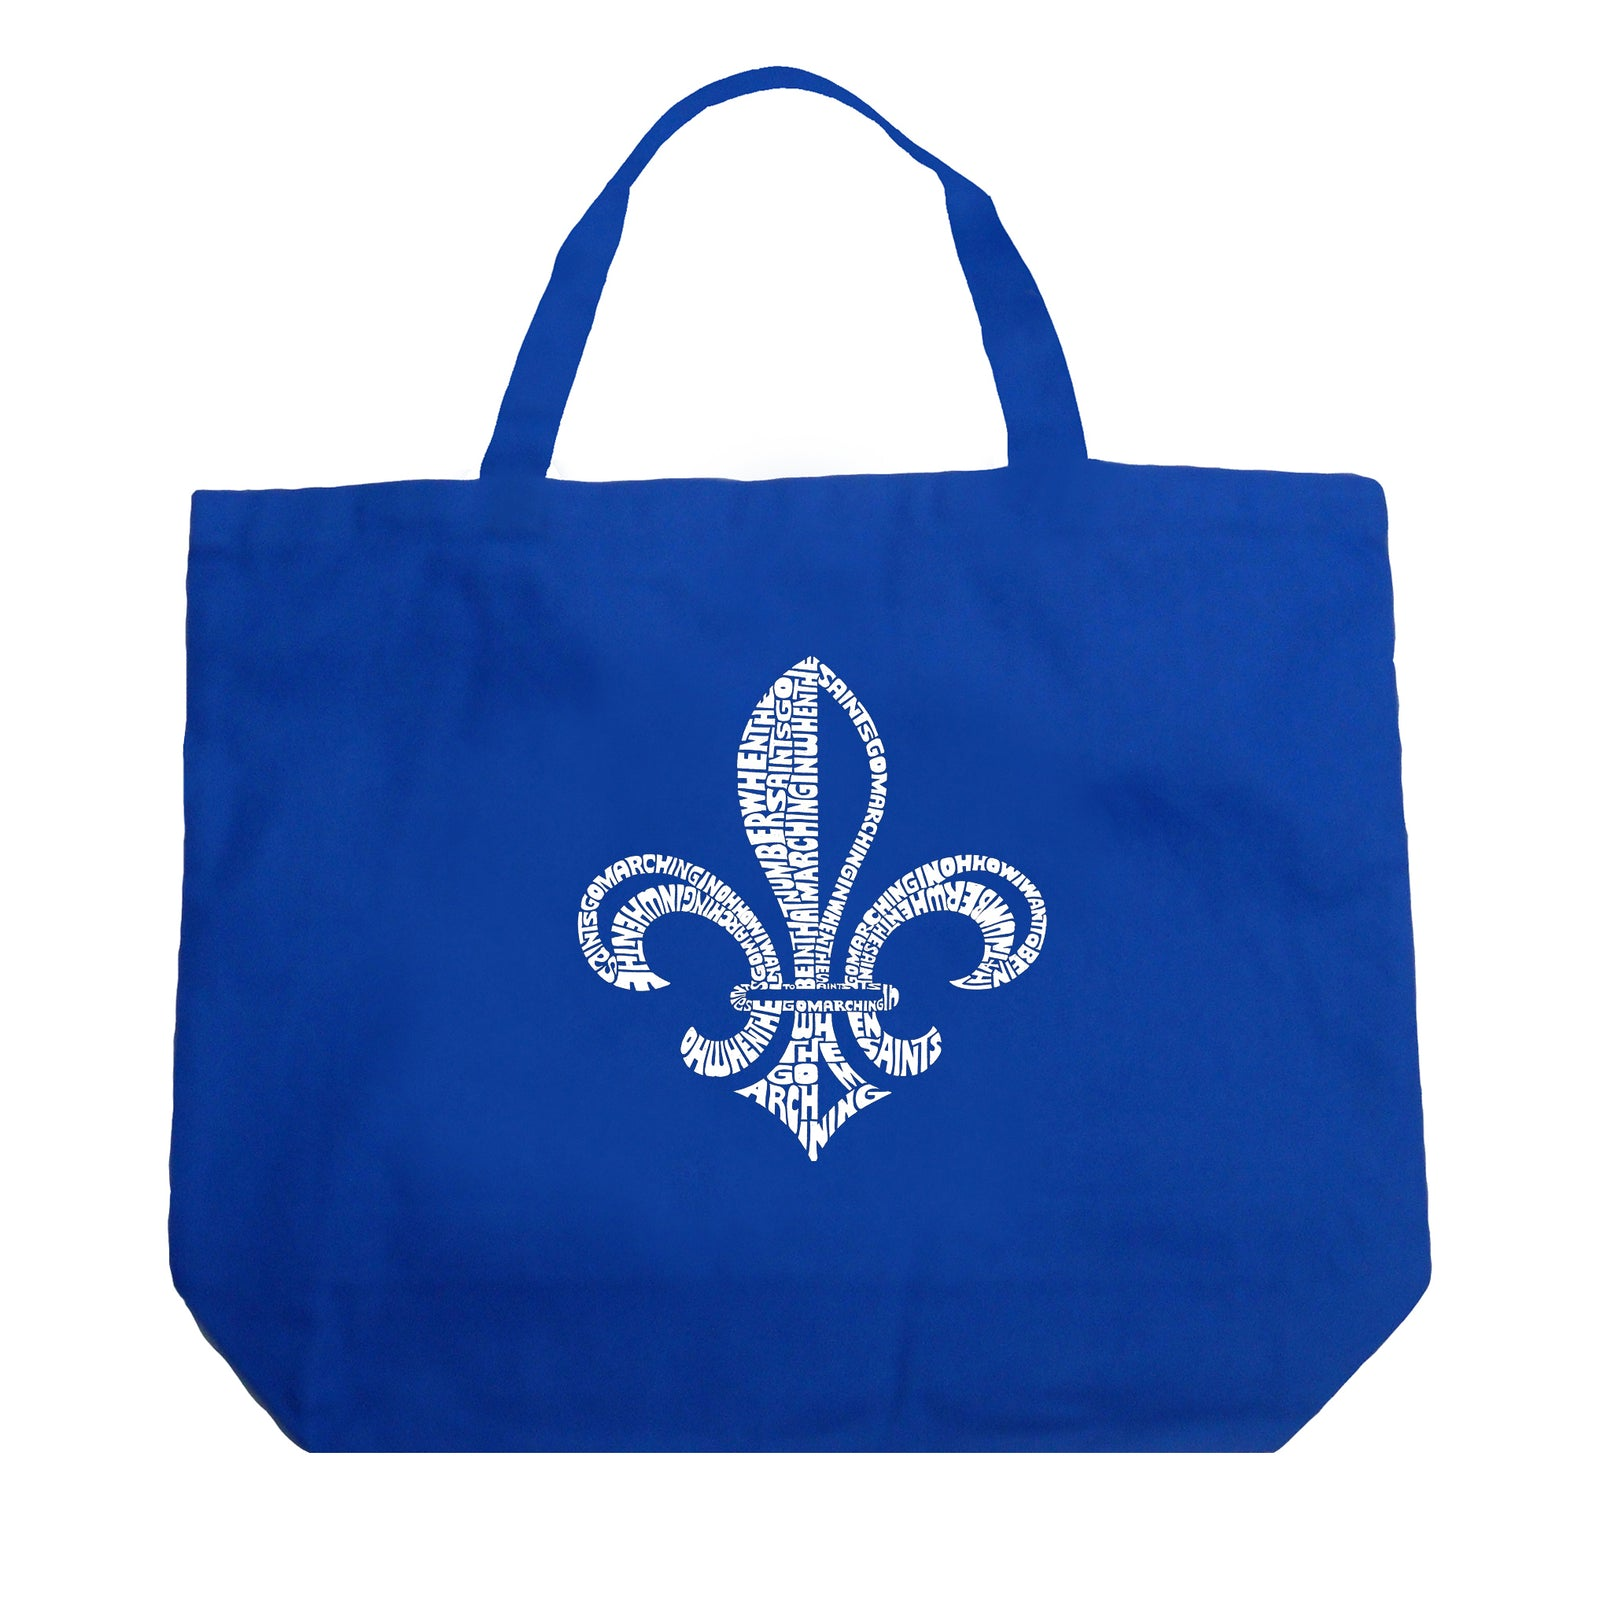 Large Tote Bag - LYRICS TO WHEN THE SAINTS GO MARCHING IN